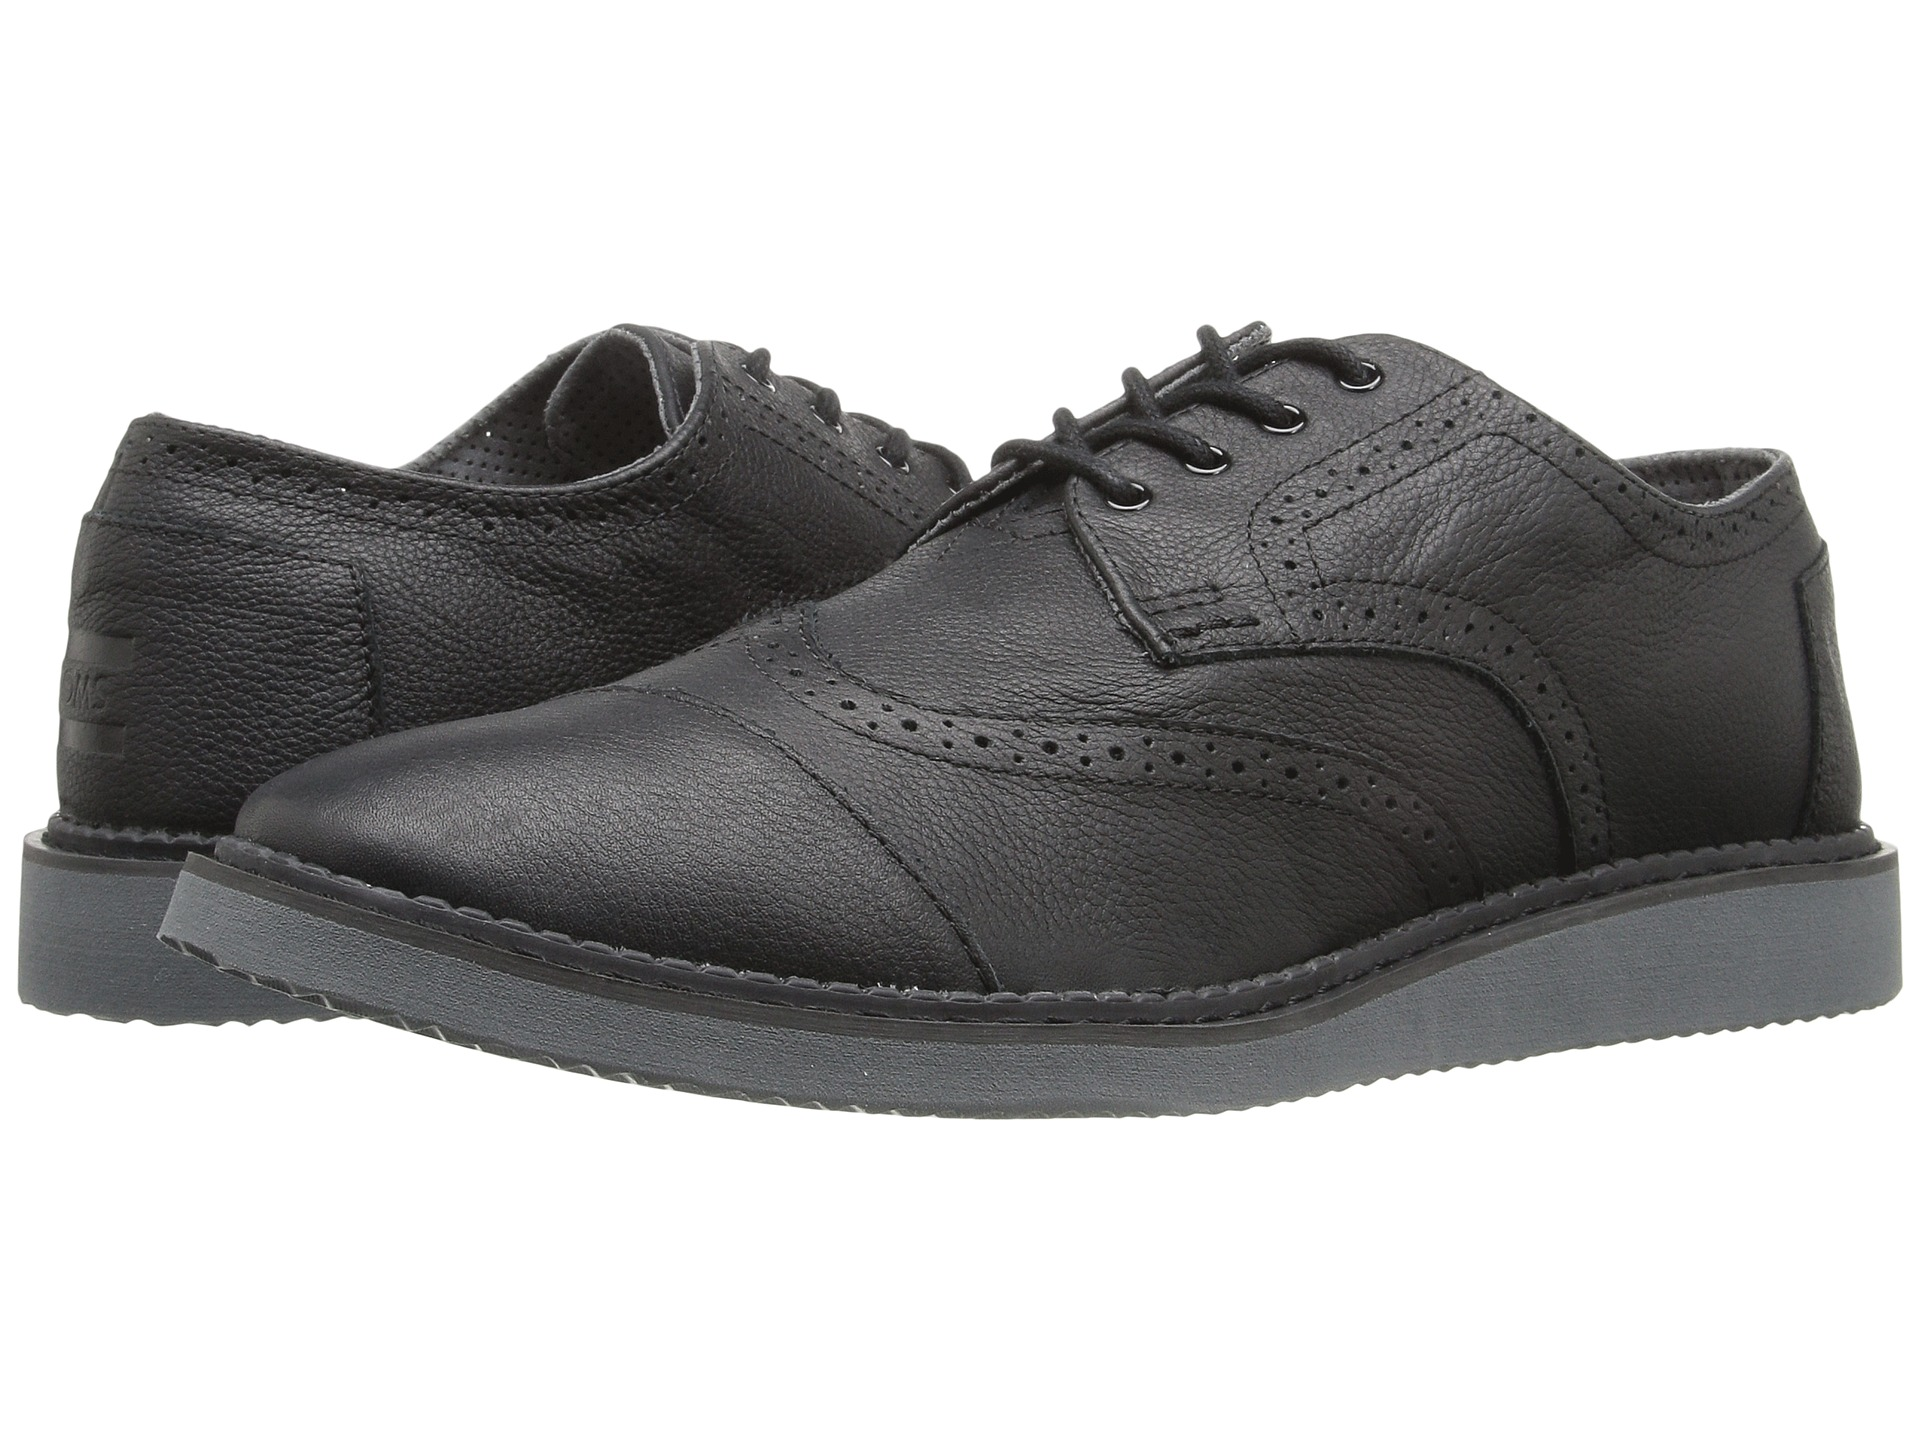 TOMS Brogue Black Full Grain Leather 2 - Zappos.com Free ...